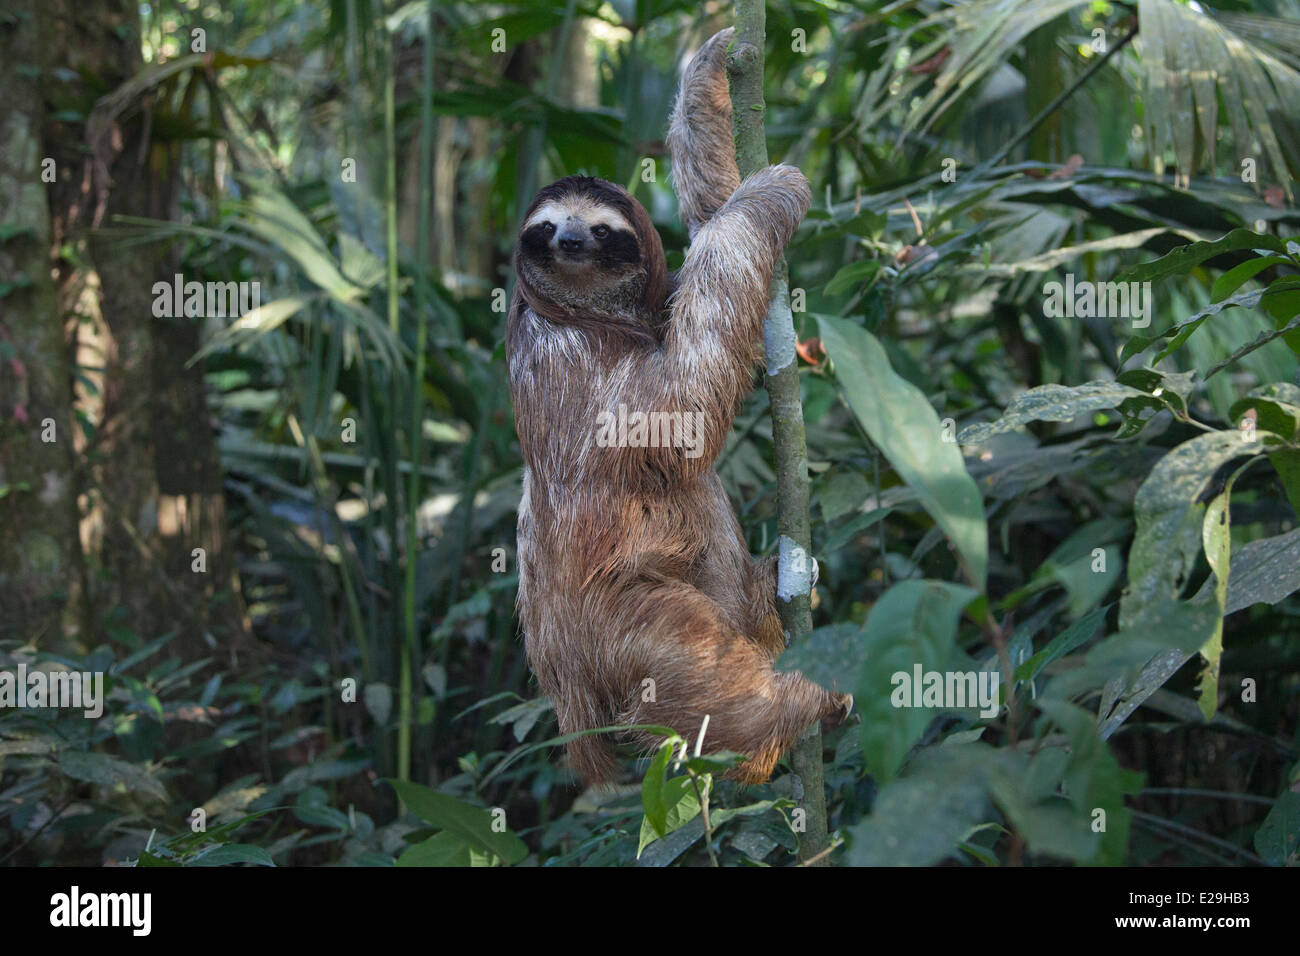 Young Brown-throated trois-toed Sloth (Bradypus variegatus) arbre d'escalade dans la forêt tropicale Photo Stock